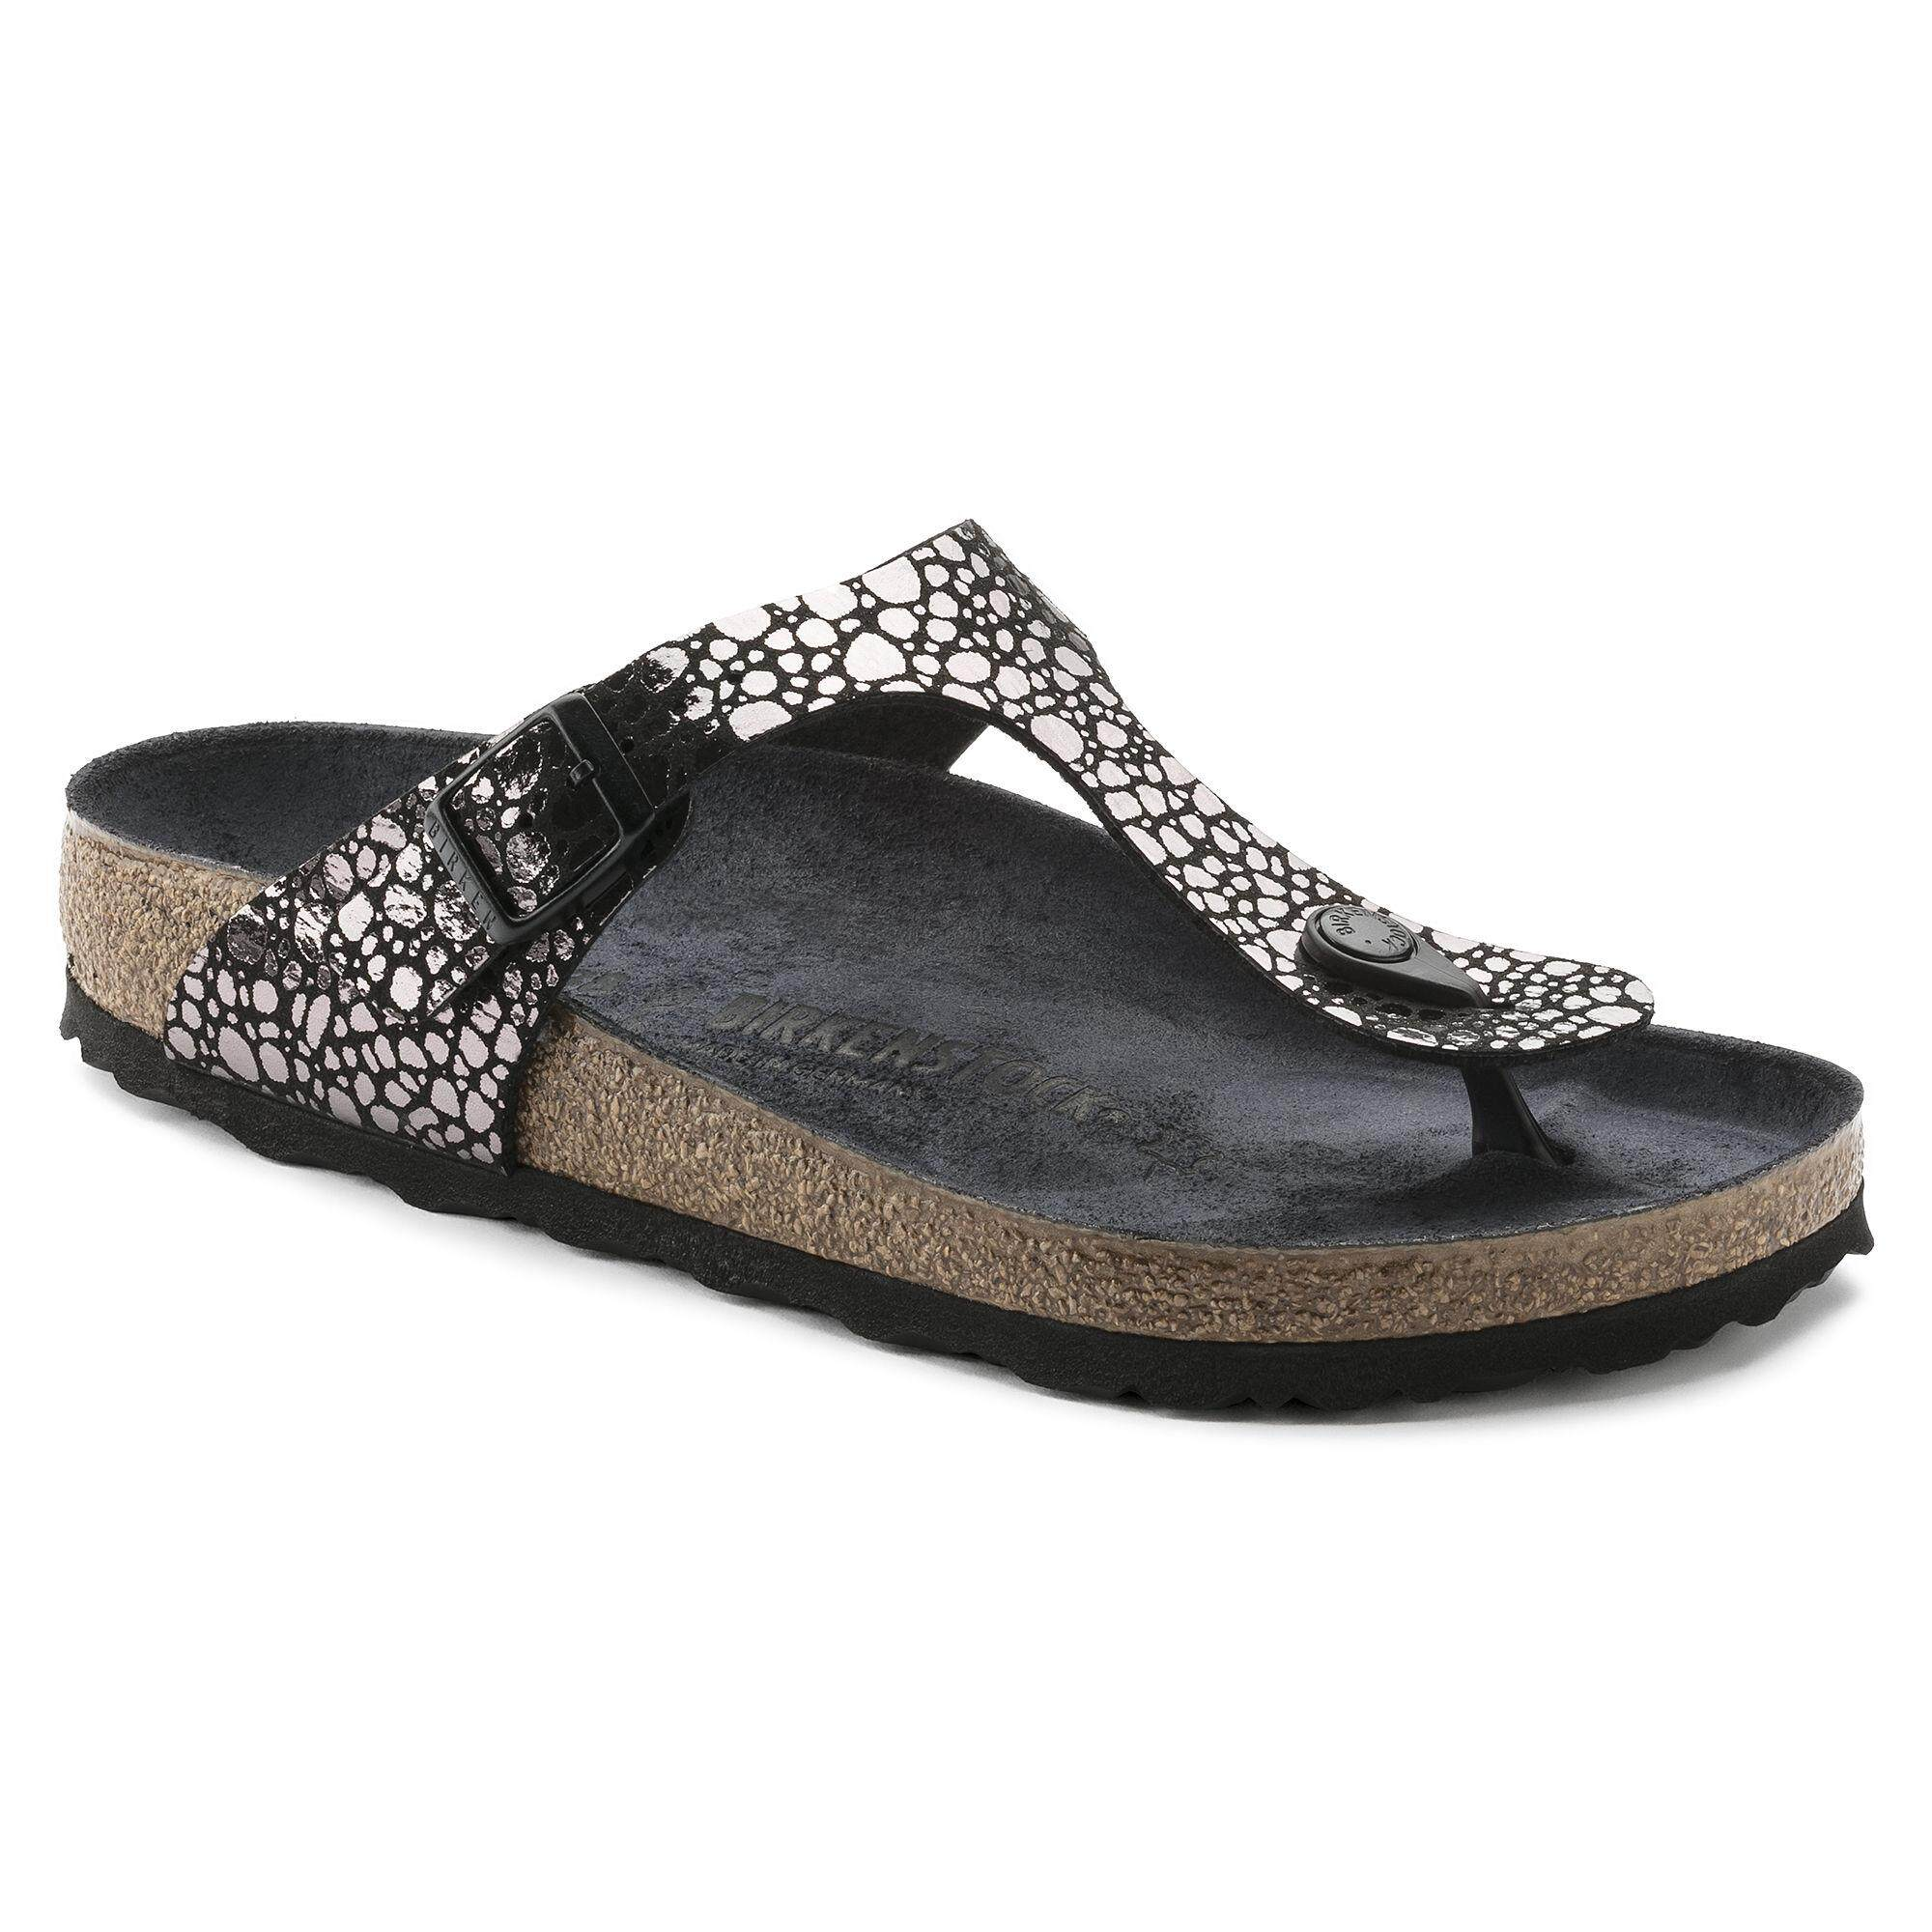 a6aed1c4efce Birkenstock Sandals Women Gizeh Stone 38 price in Singapore